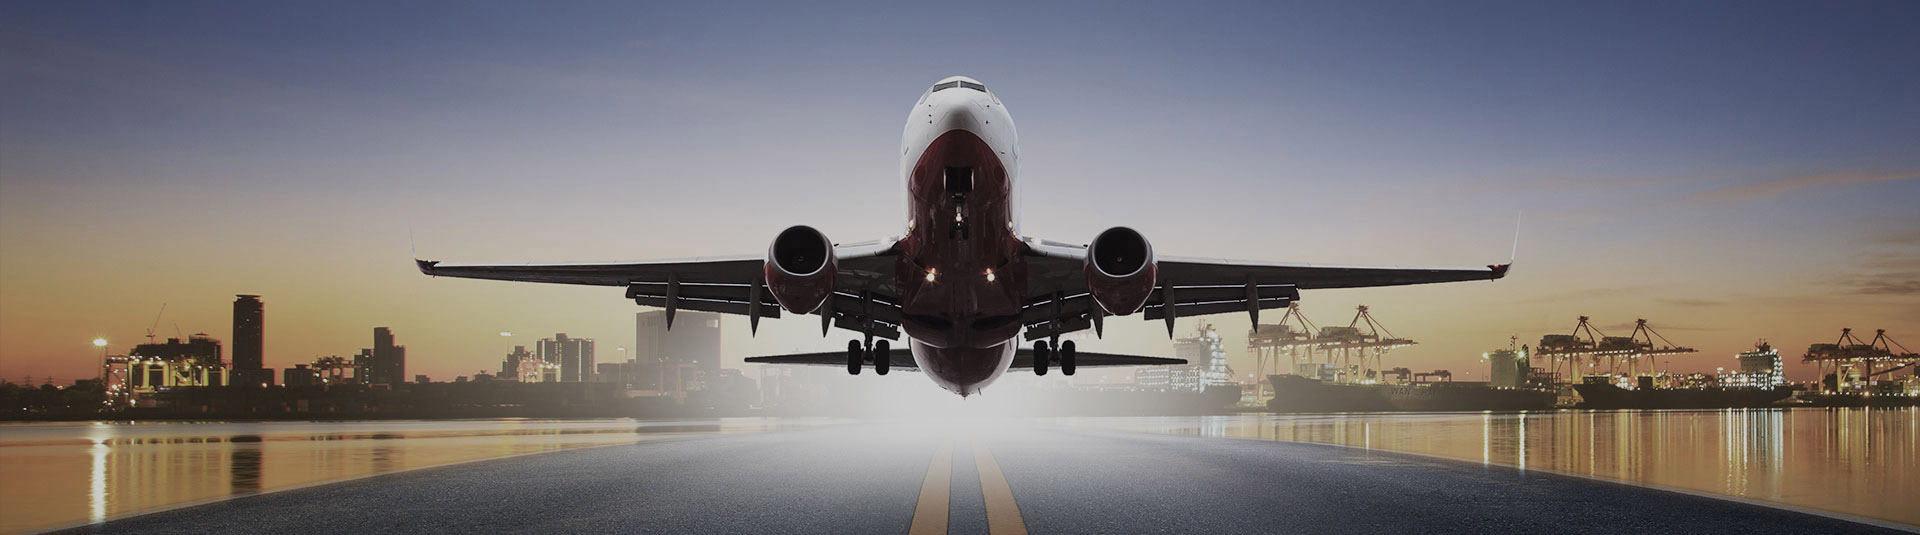 About Aircruise Travels